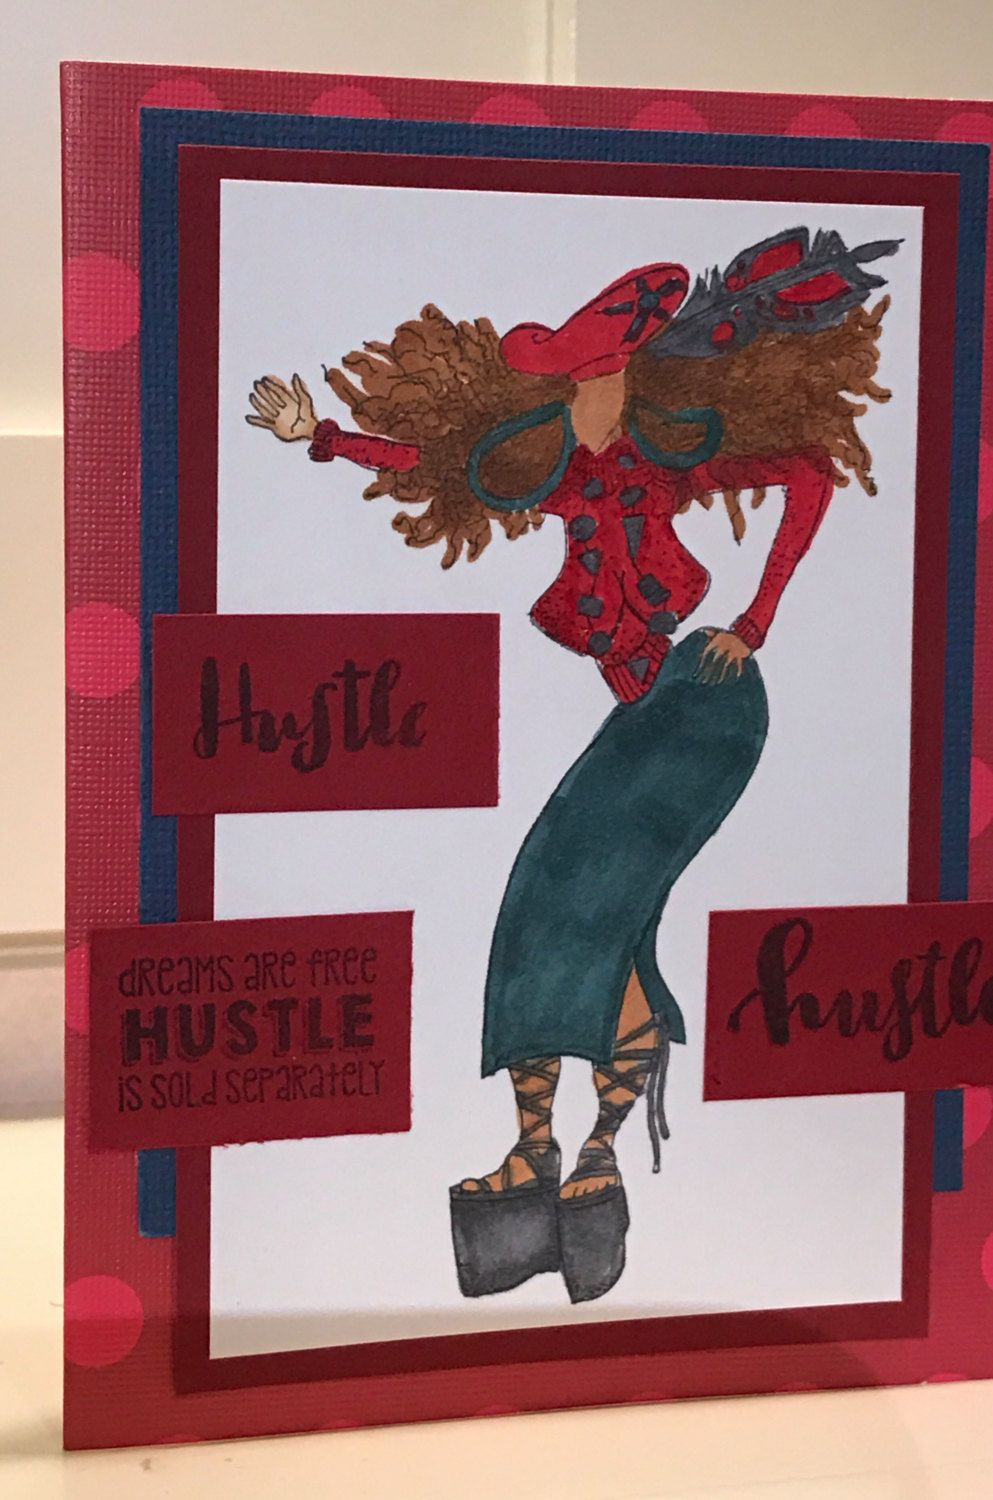 Dreams are free hustle is sold separately african american woman dreams are free hustle is sold separately african american woman encouragement greeting card by playsnicelywithpaper kristyandbryce Images